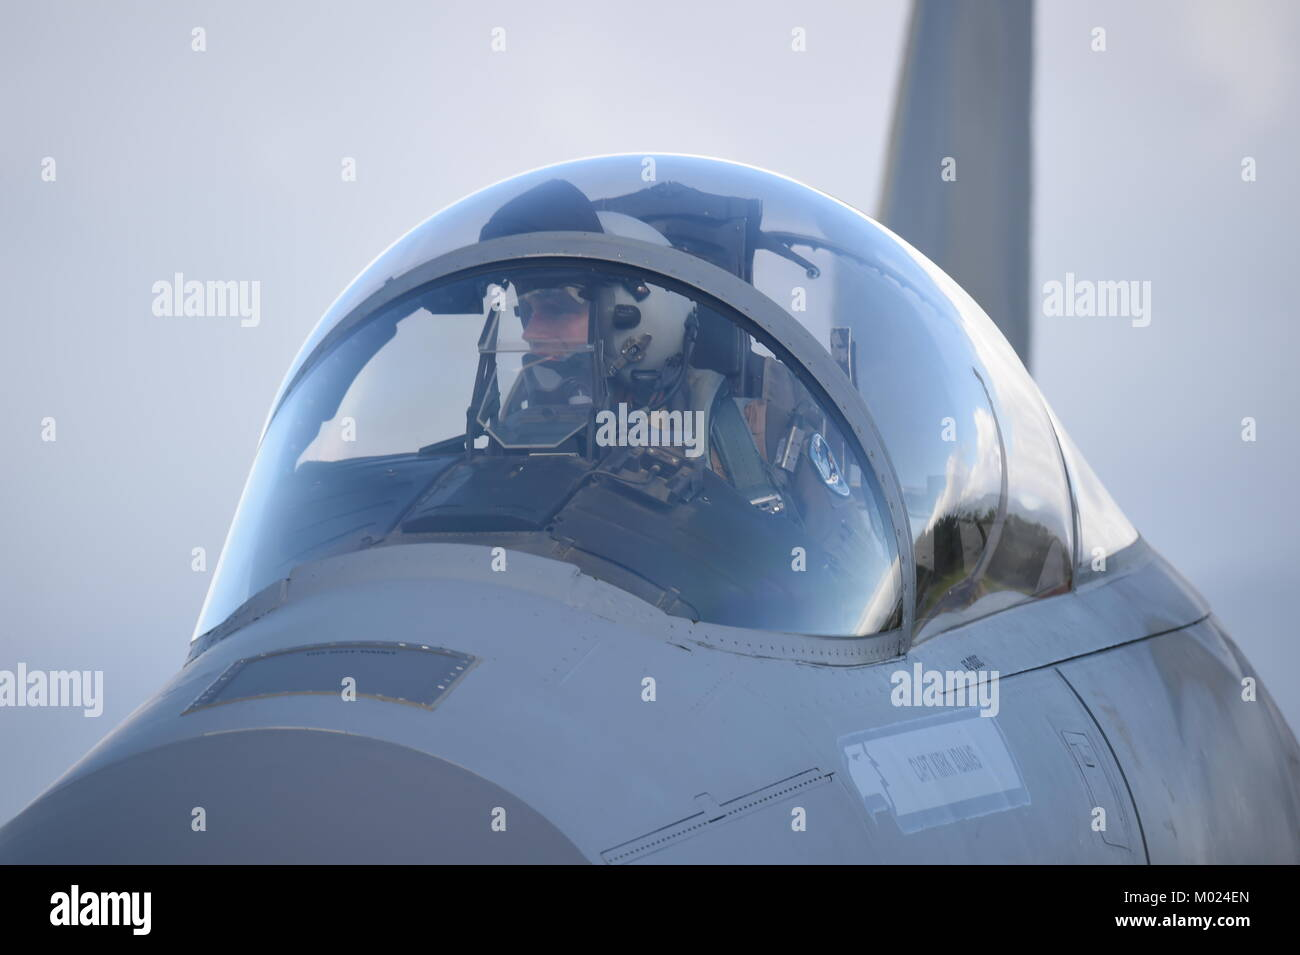 F-15C Eagle fighter jet from California Air National Guard. - Stock Image